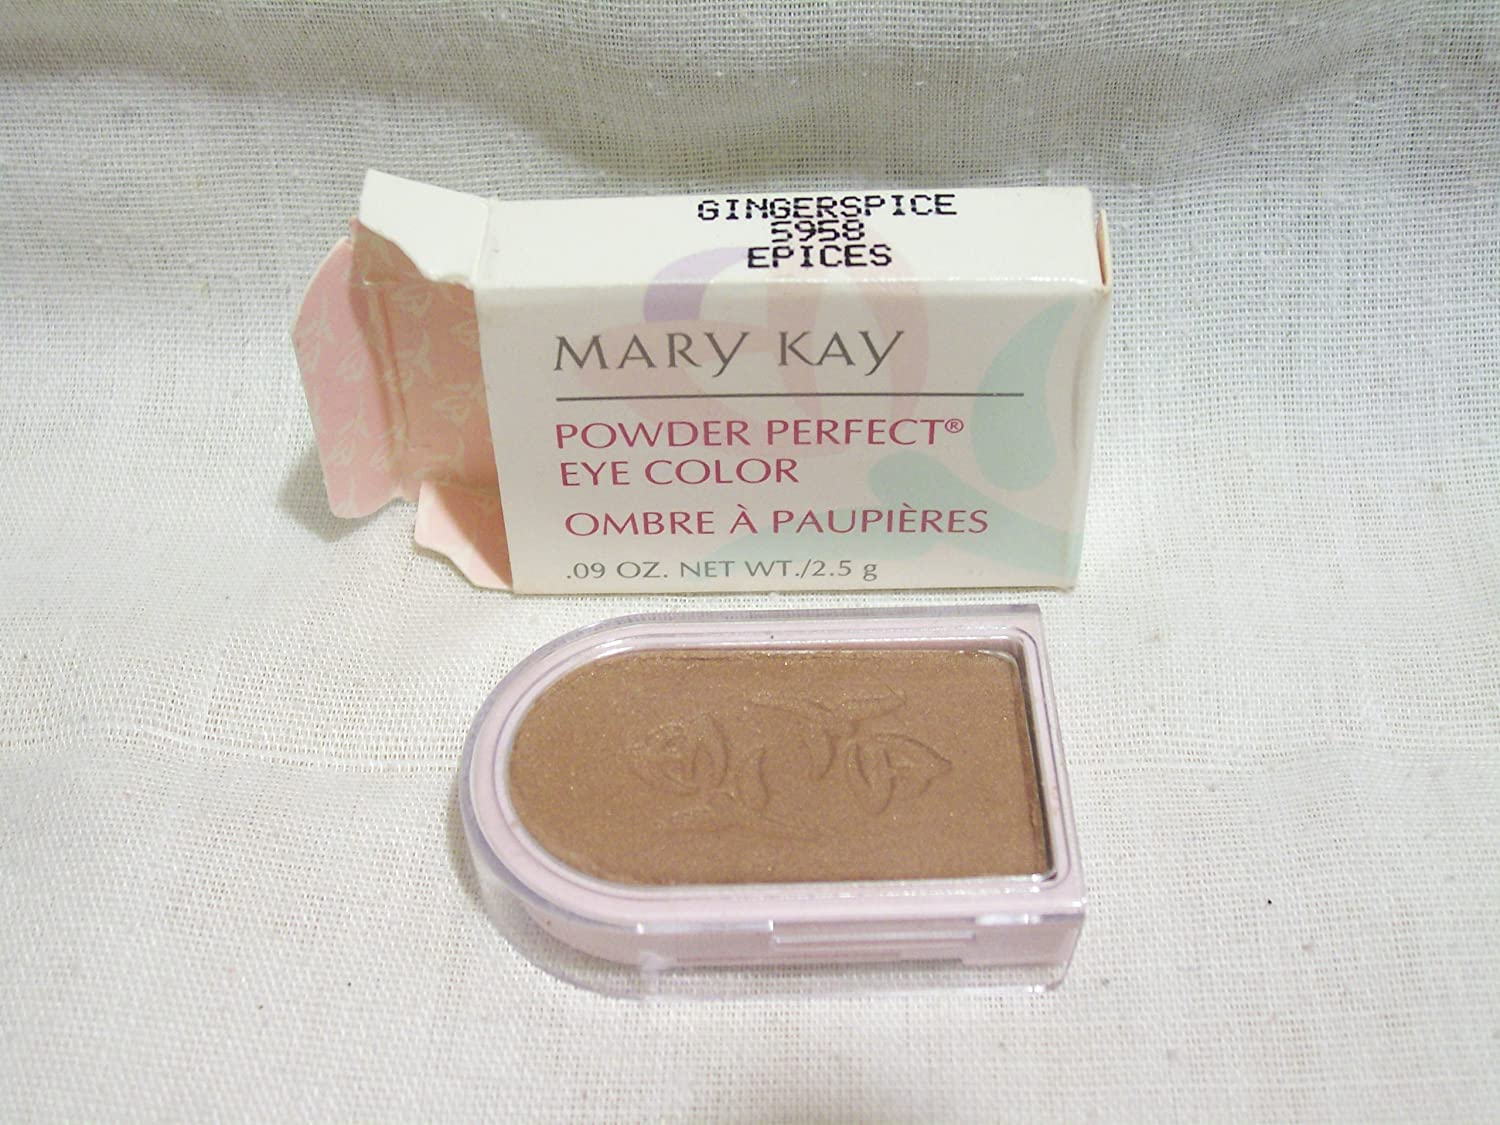 Mary Kay Sale Special Price Ranking TOP10 Powder Perfect Eye #5958 ~ Shadow Gingerspice Color